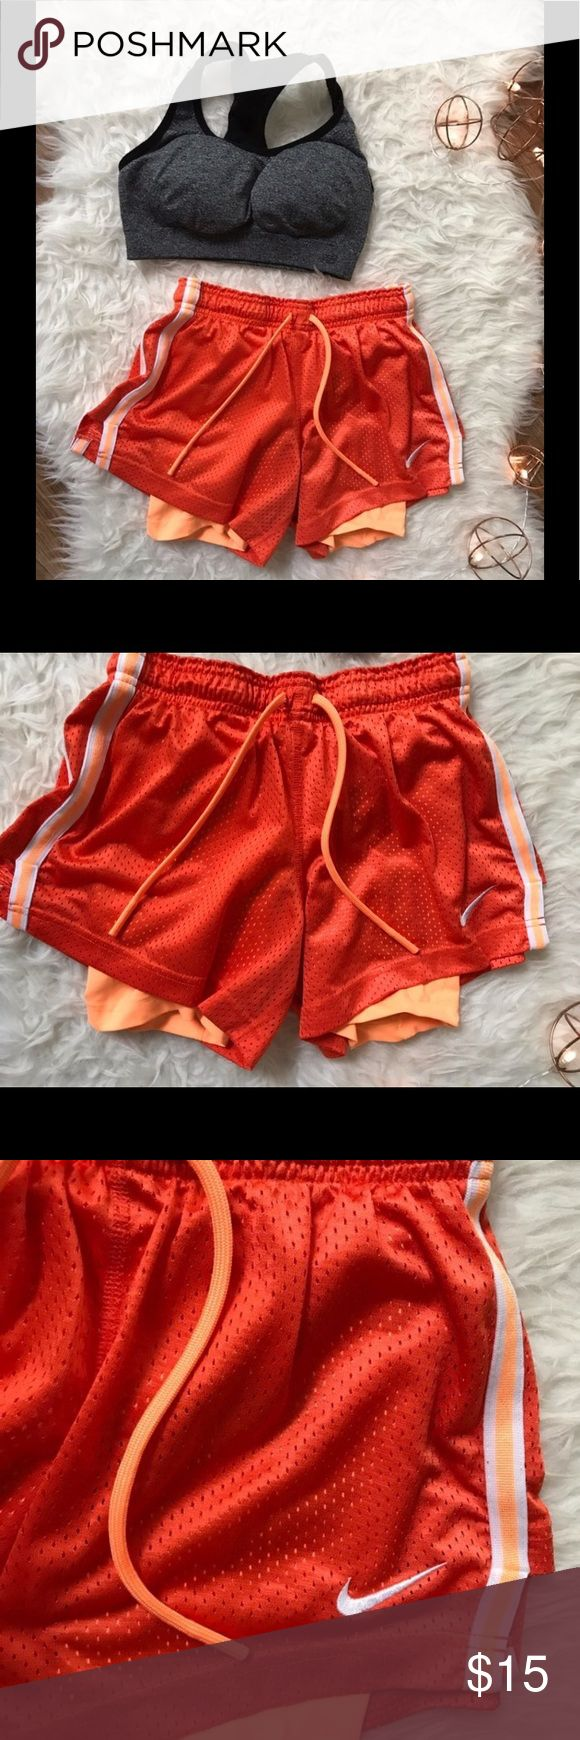 Nike Dri-Fit Shorts Orange running shorts. Worn maybe three times. Need new home. Help me out :) super comfy, I love the dri-for with the compression shorts built in personally cause my butt and underwear don't show when I'm weight lifting at the gym and all them creepy boys be creeping ;) you know what I mean...   #nike #nikedrifit #nikedrifitshorts #orangenike #runningshortswithcompressionshortsunder  #compressionshorts #justdoit Nike Shorts